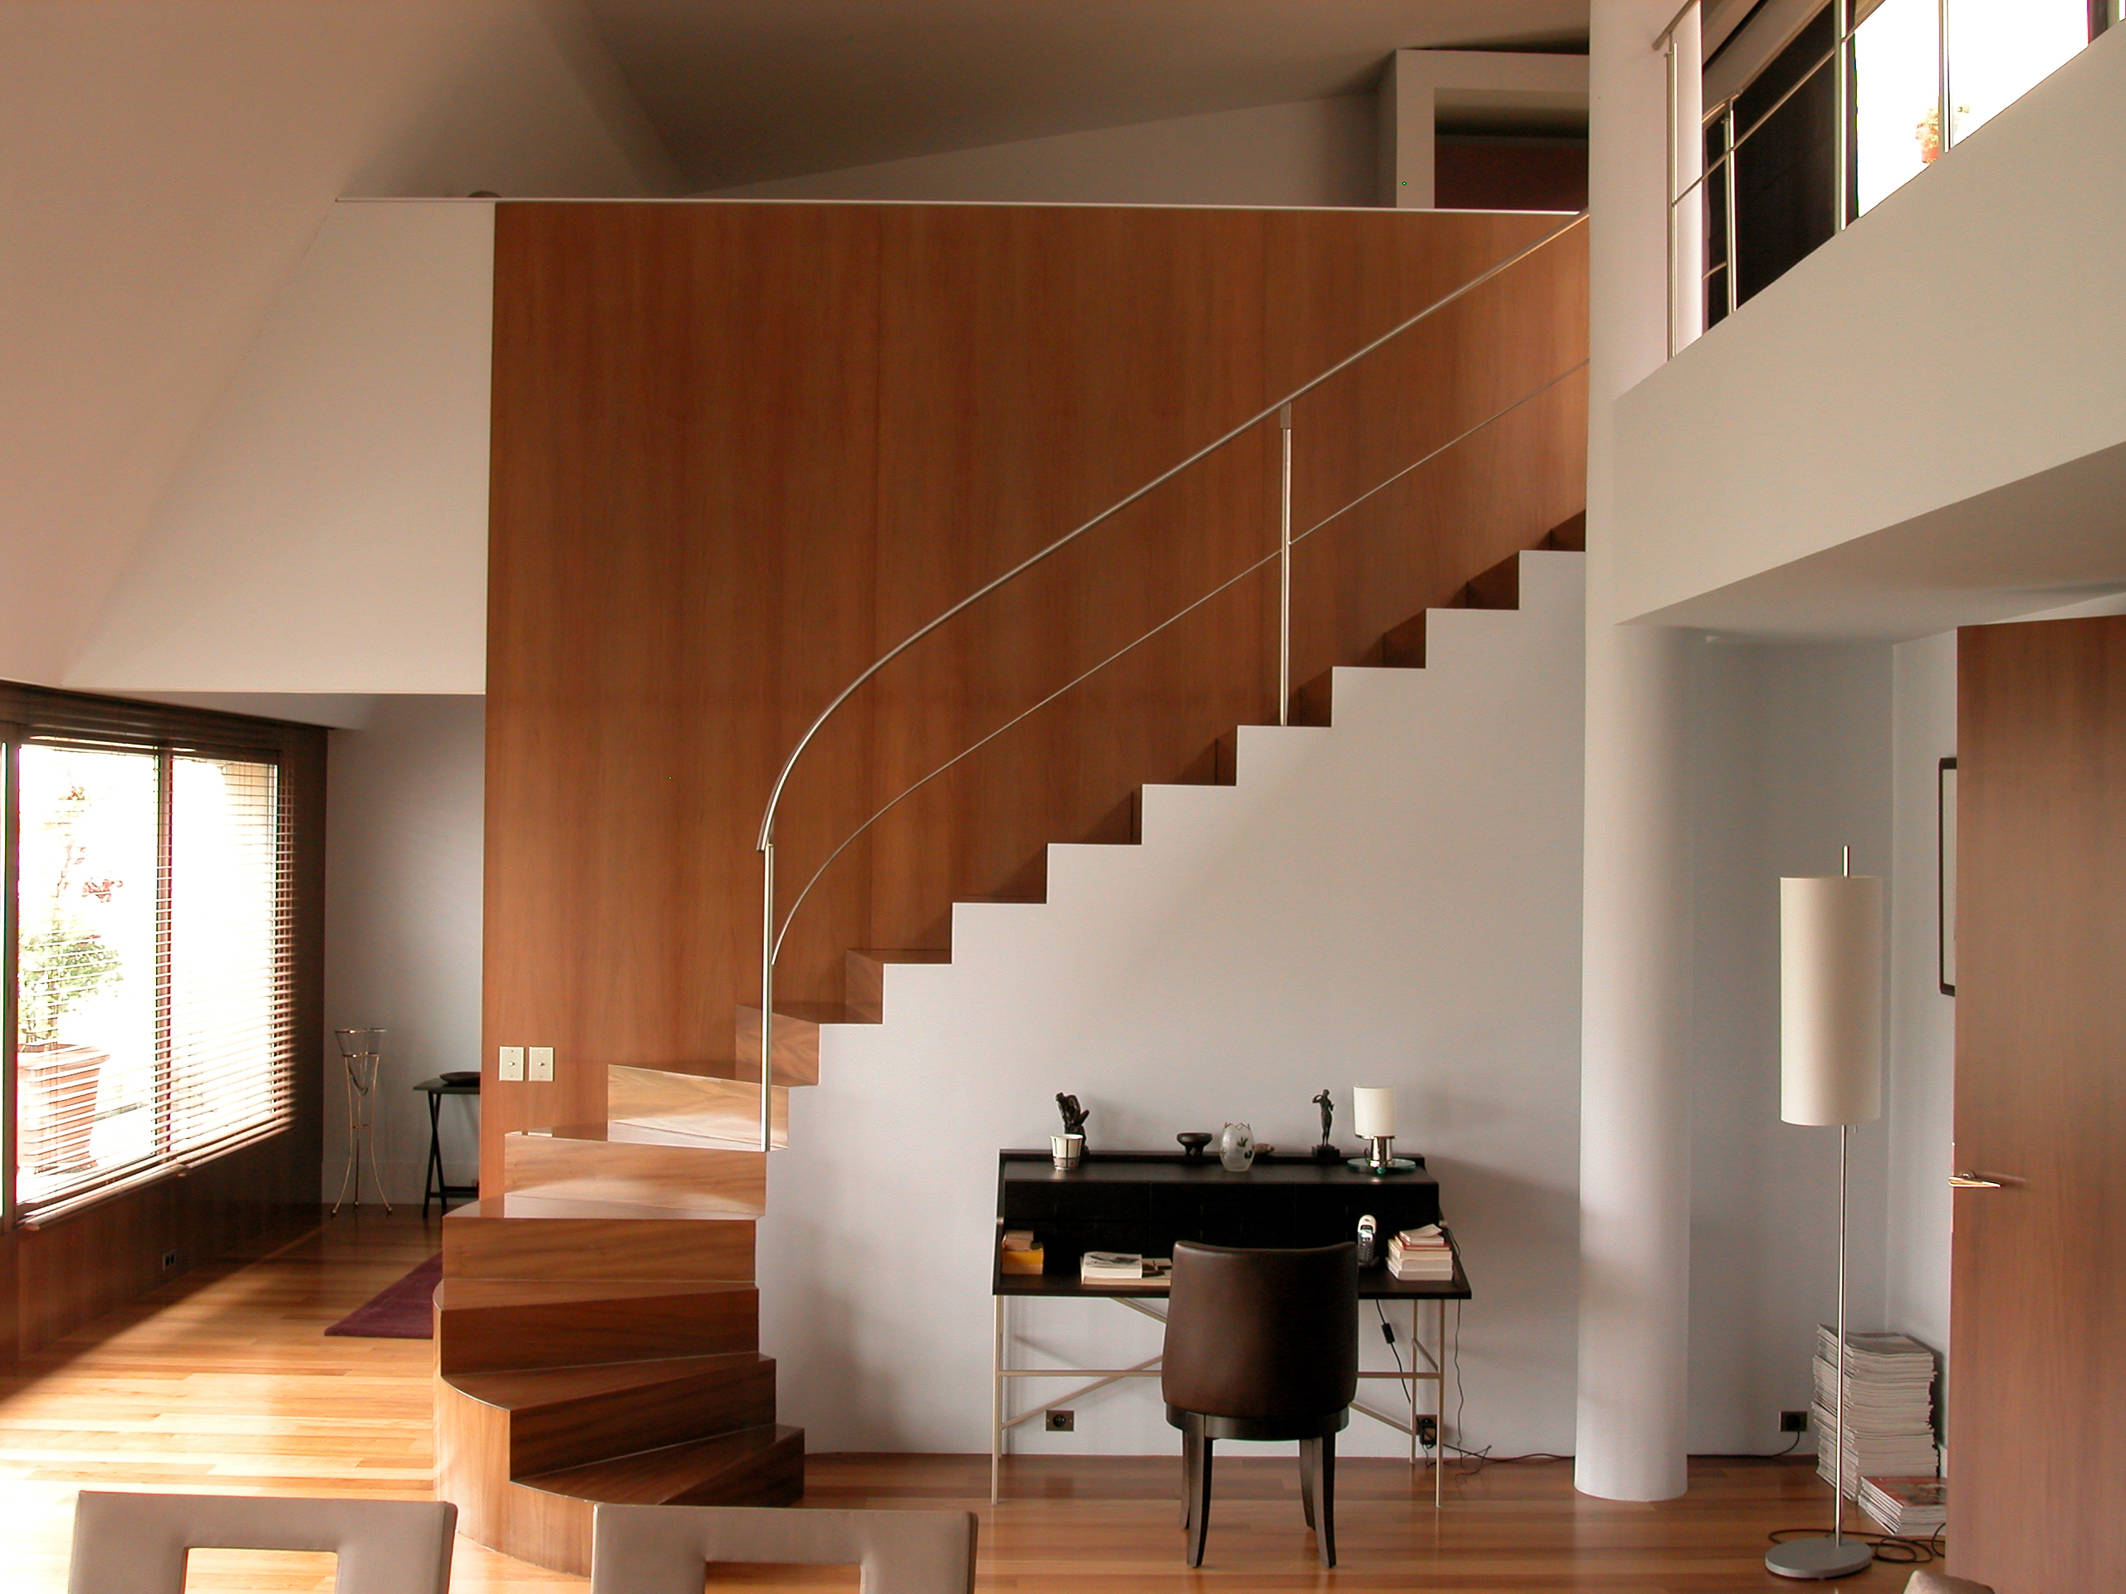 Astonishing Modern Staircase Designs Youll Instantly Fall For - Home staircase designs